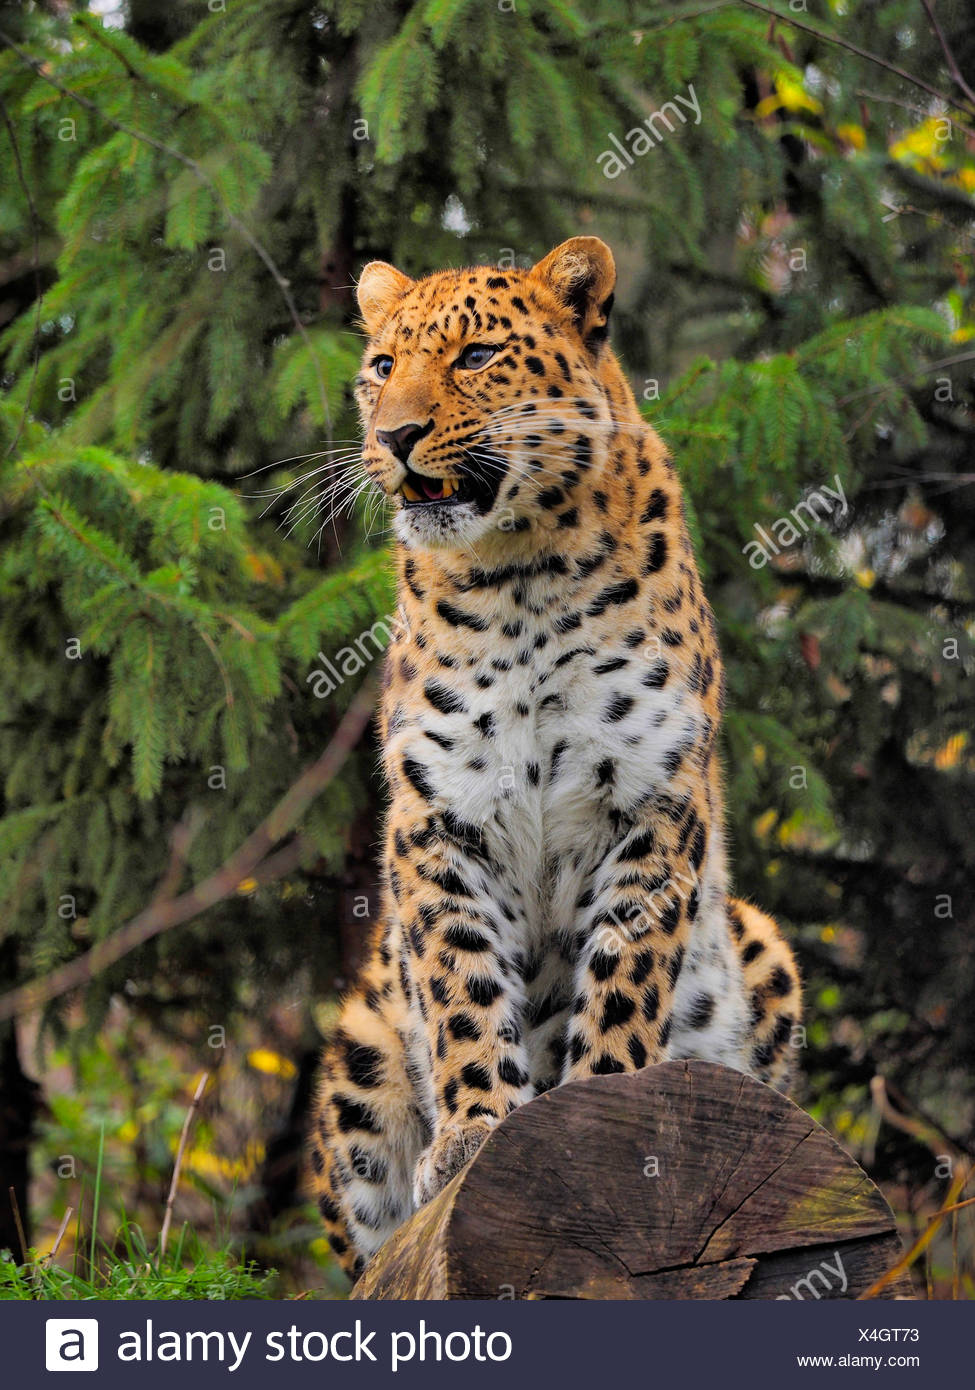 Amur leopard (Panthera pardus orientalis), sitting on a tree trunk - Stock Image